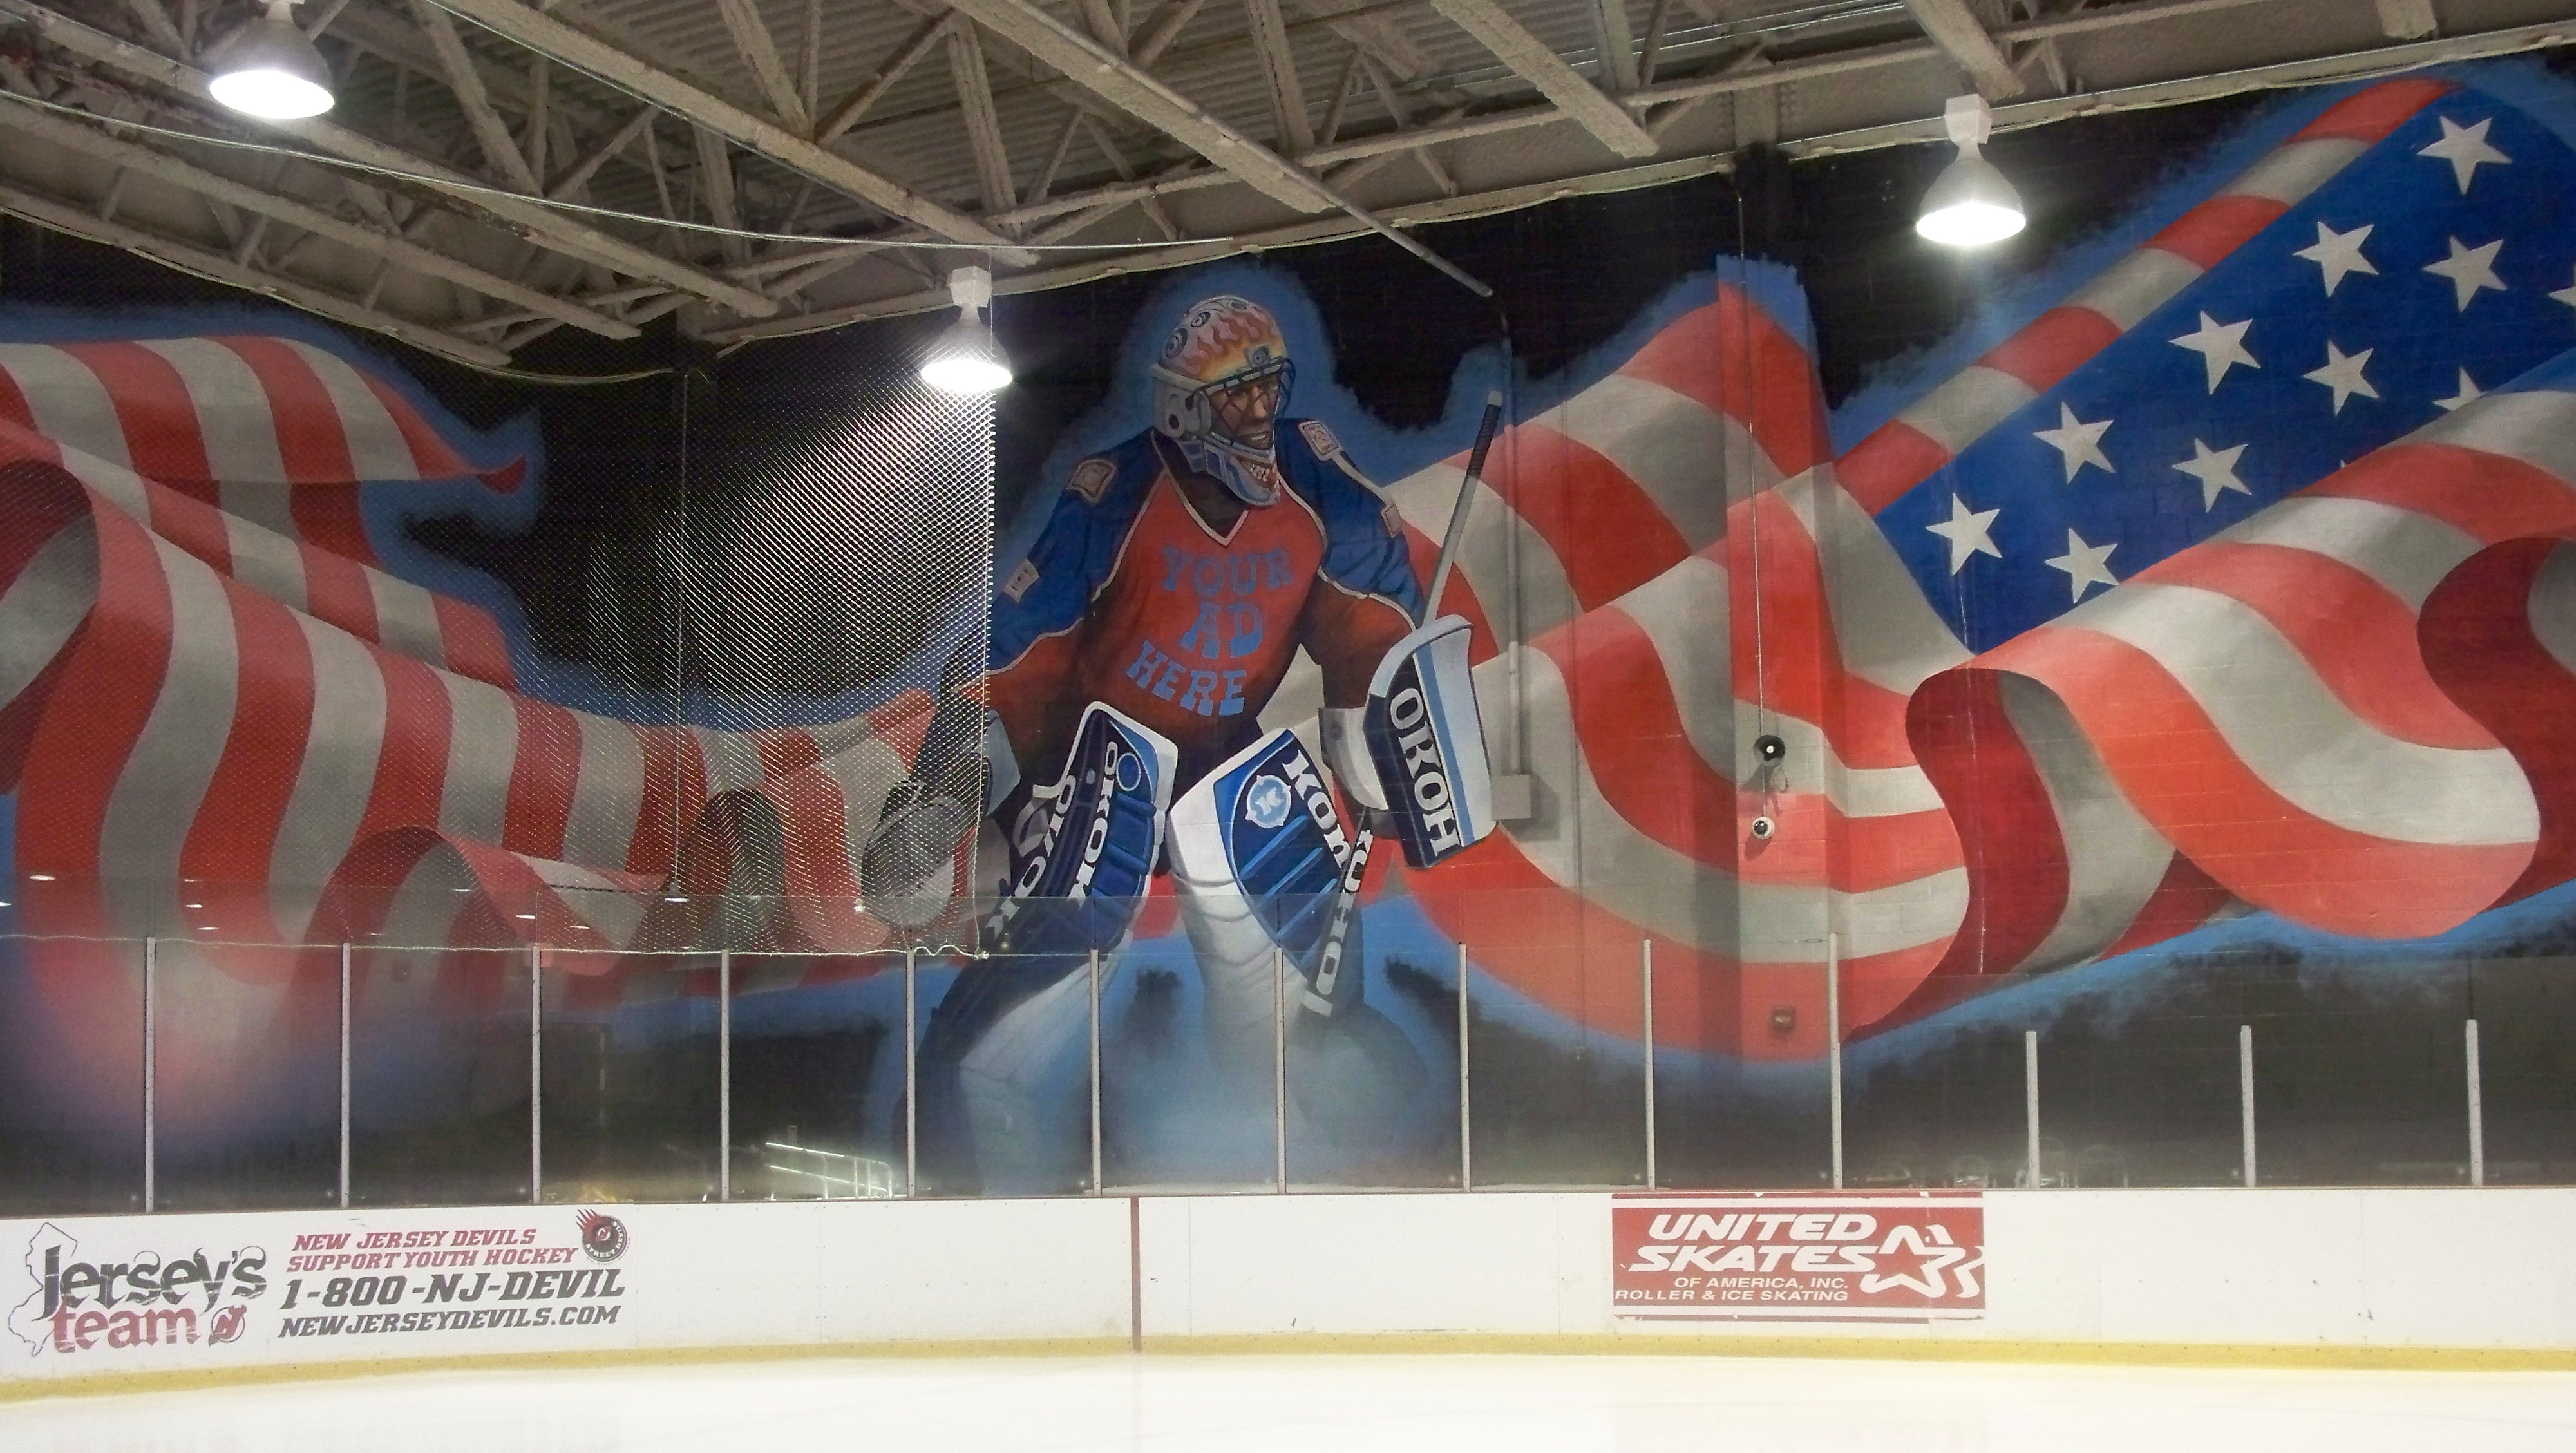 world rinks elite hockey shooters rink is located in woodbridge illinois usa i took these pictures when i was teaching i couldn t believe the detail in the wall murals amazing rj